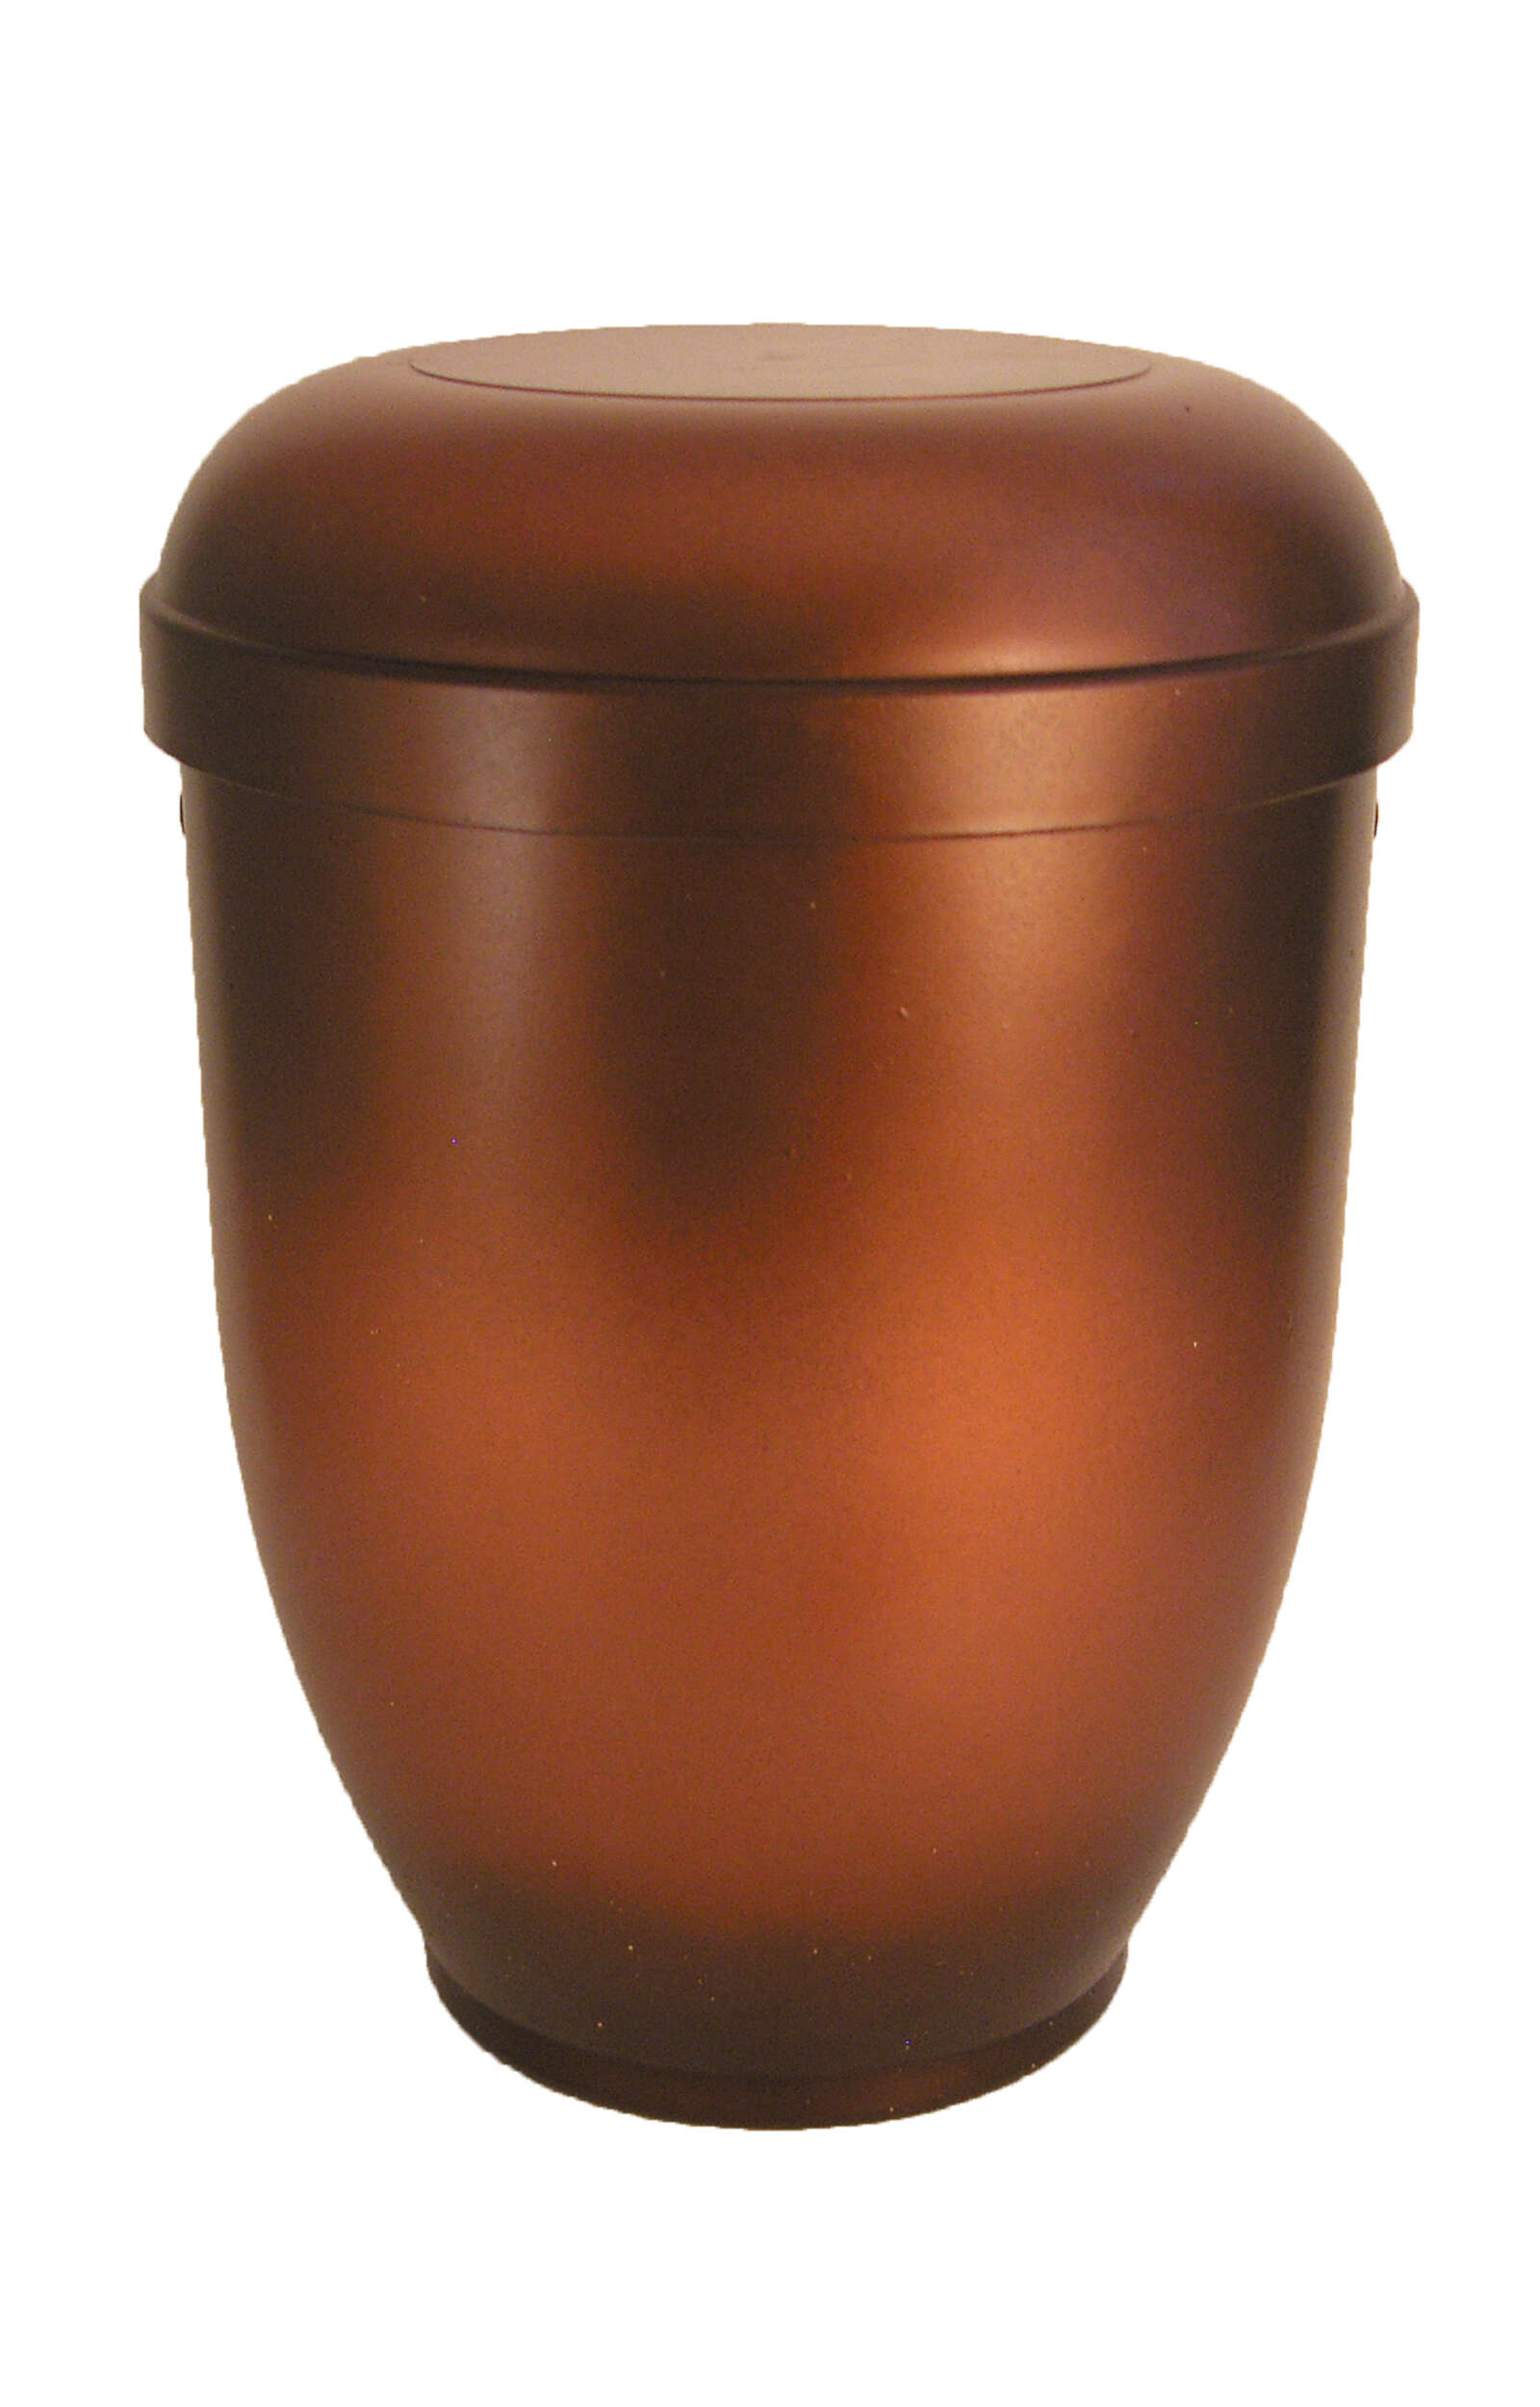 en BK3621 bio funeral urns for human ashes biodegradable urn copper meallic